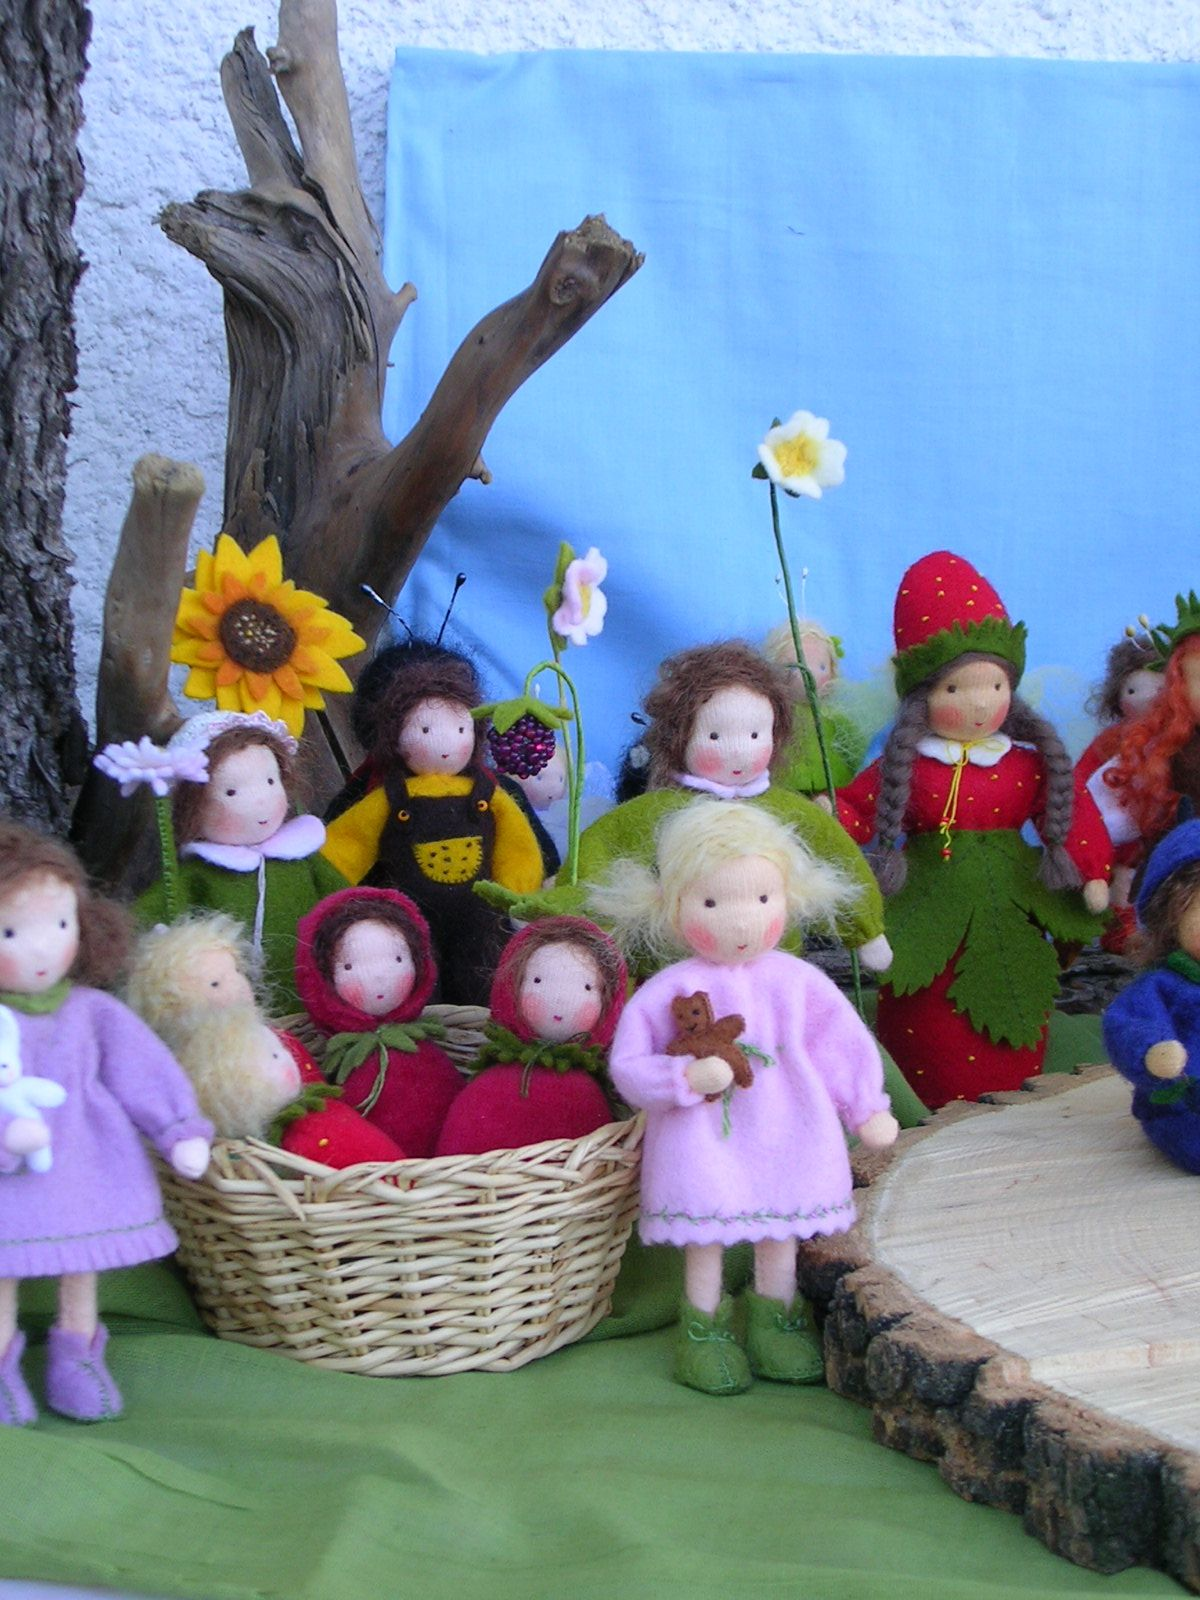 Blumen Walldorf Sommer Seasonal And Fantasy Dolls Handgemachte Puppen Filz Fee